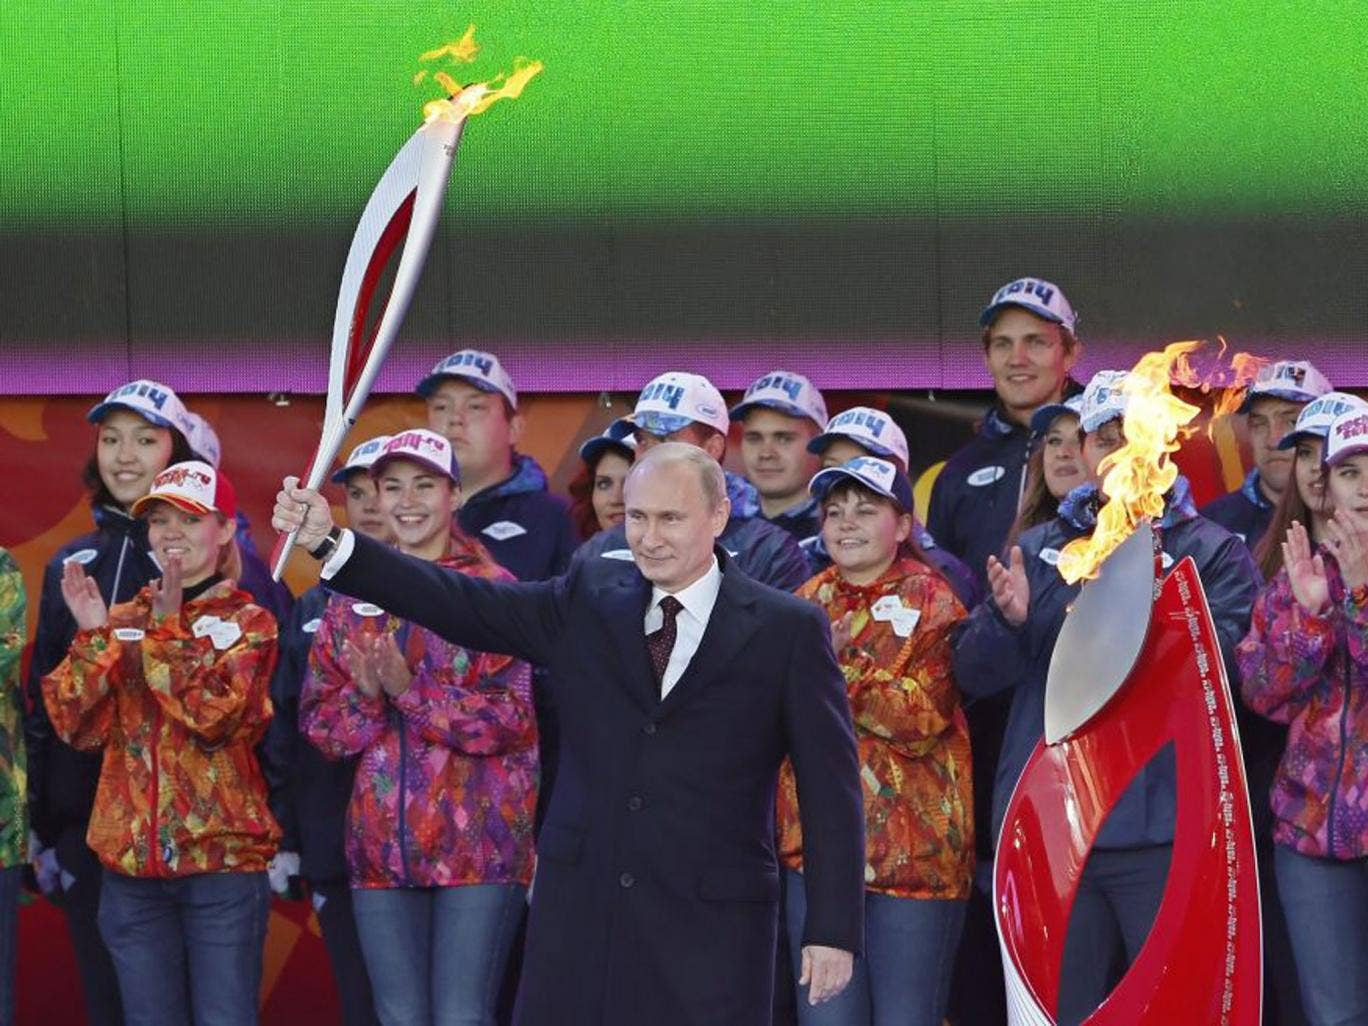 Vladimir Putin with the Olympic torch at a ceremony in Moscow yesterday